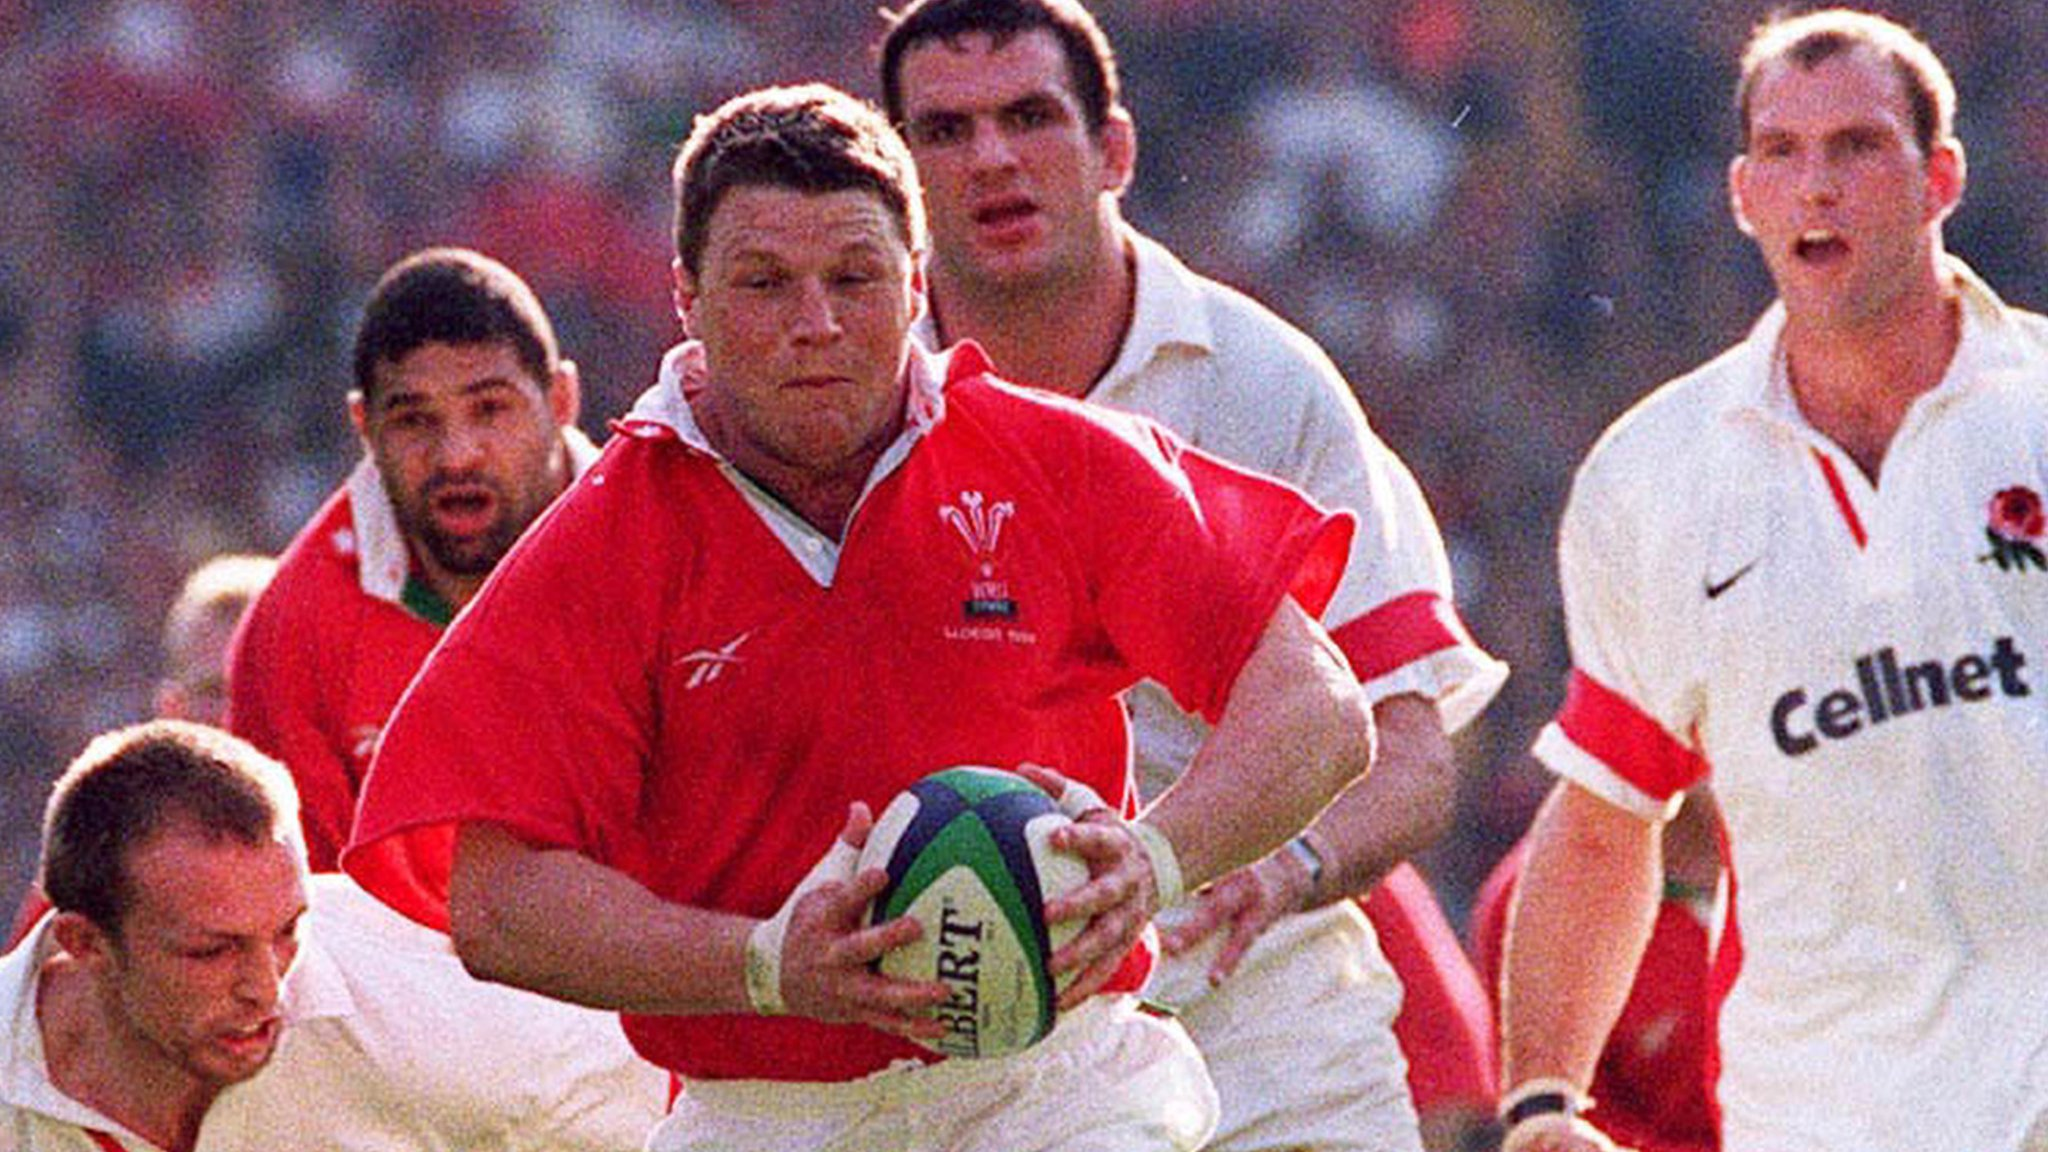 Drama, Tom Jones and Gibbs' great try - story behind Wales' 1999 win over England